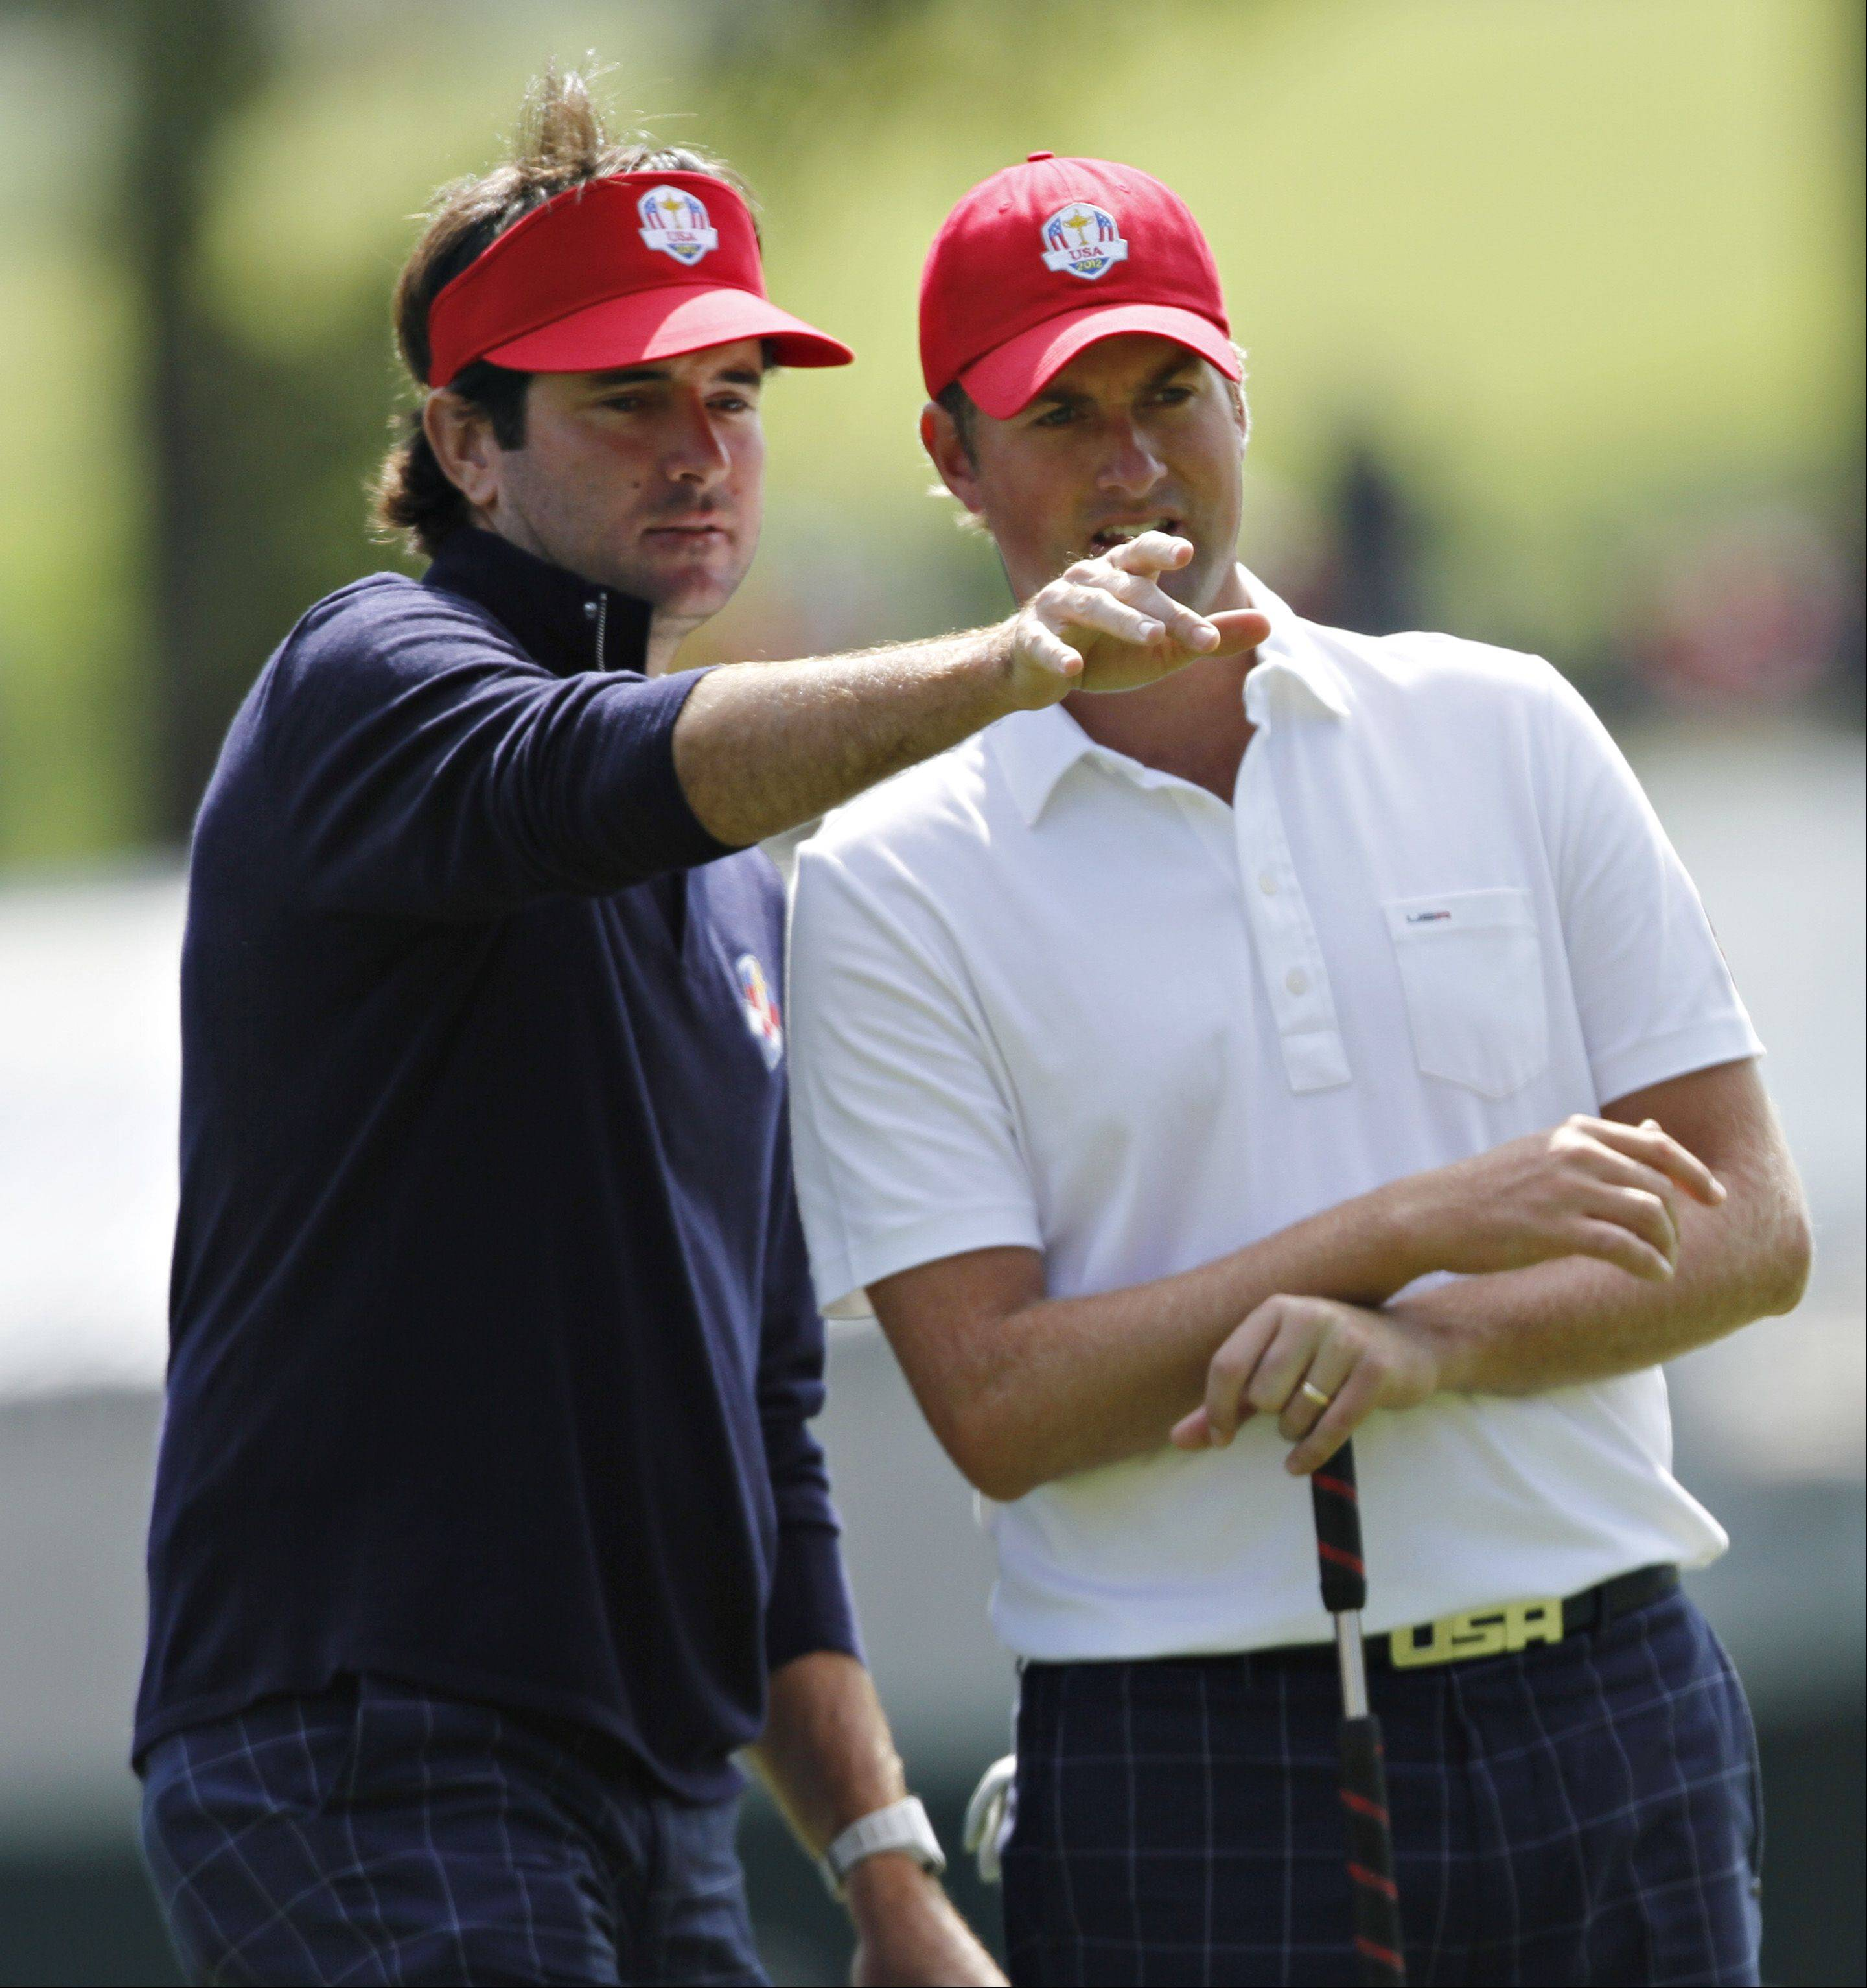 Teammates Bubba Watson and Webb Simpson knew exactly what they were doing Friday afternoon as they dominated and earned the first Ryder Cup point of the fourball matches at Medinah.